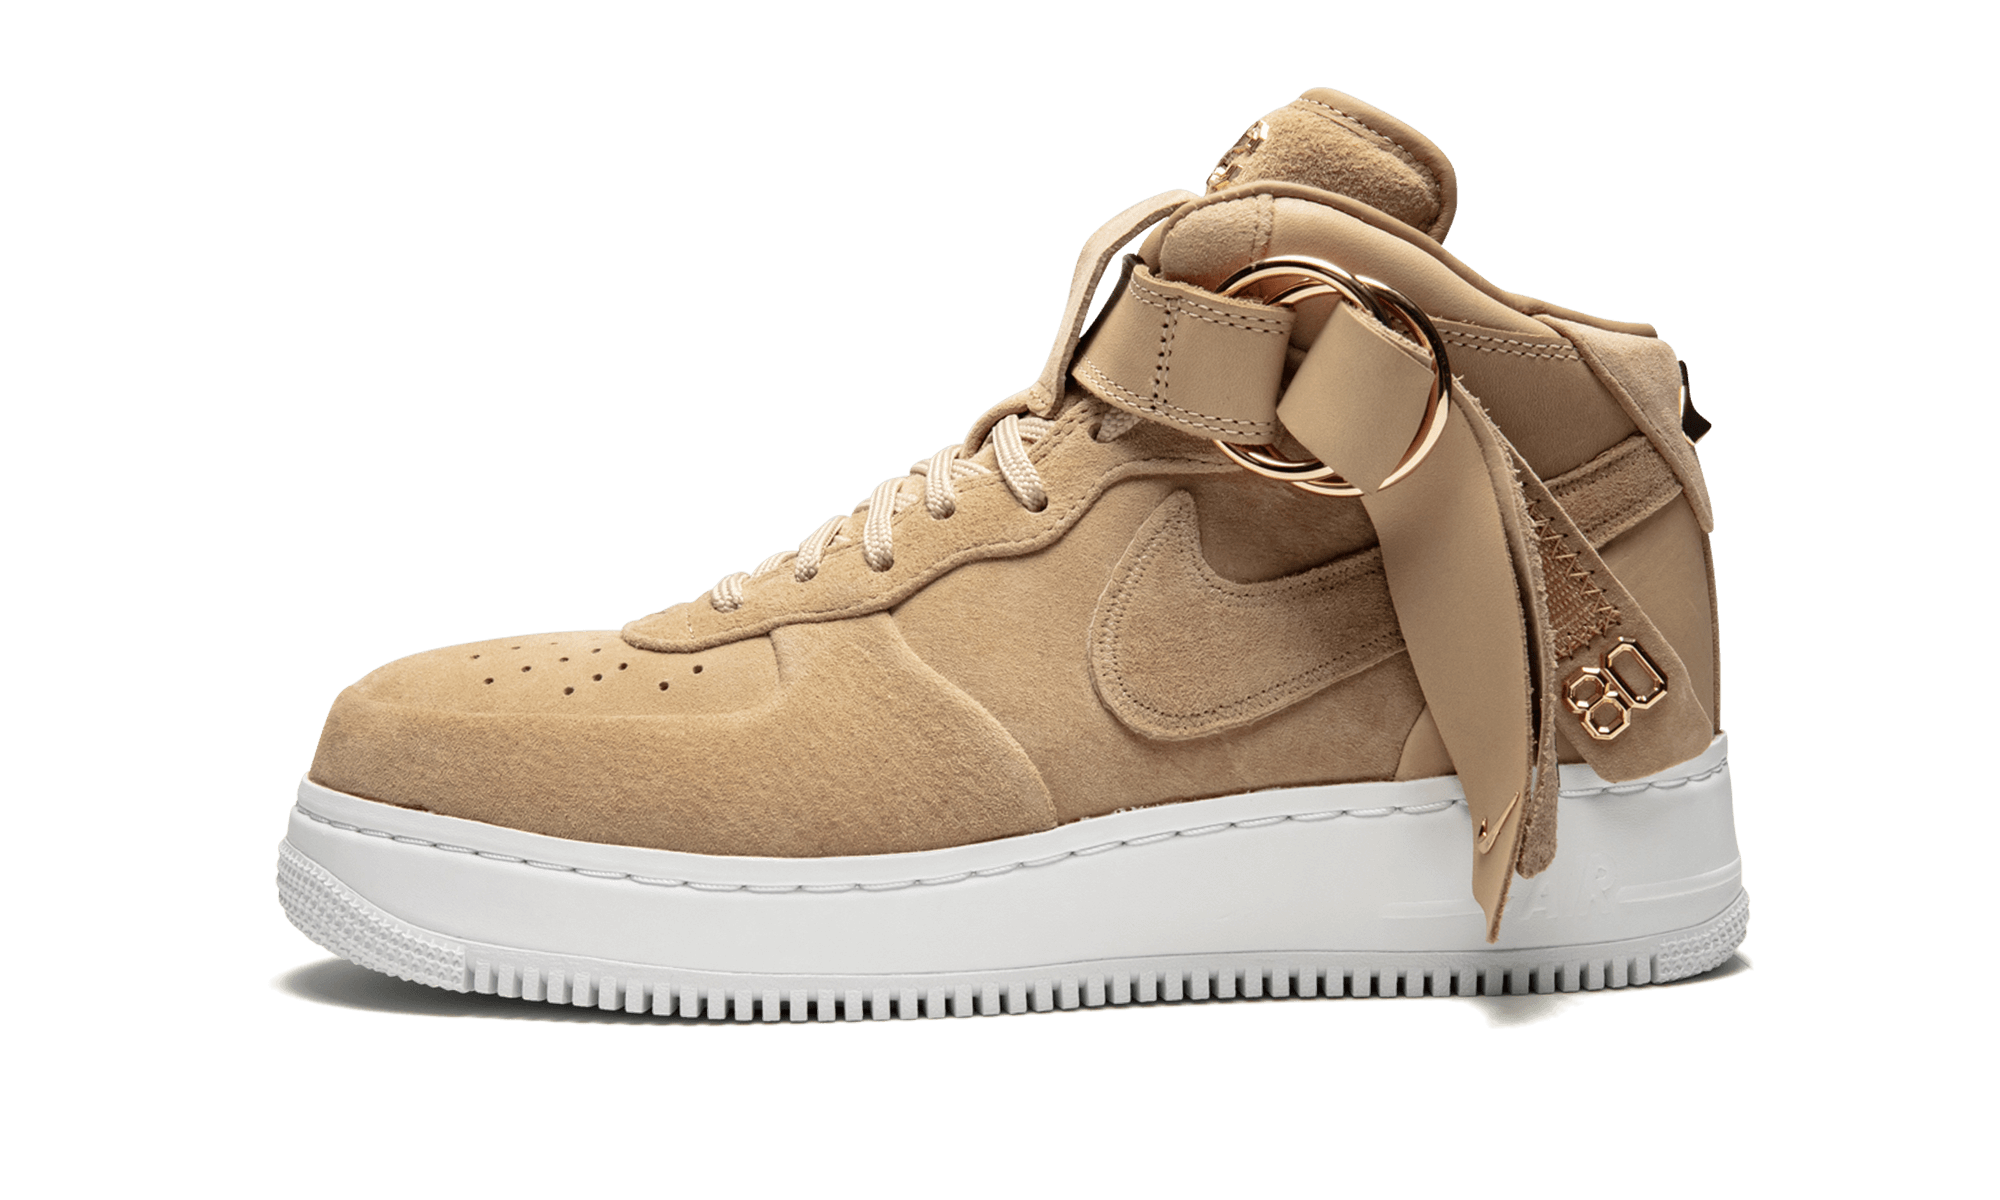 Nike Air Force 1 Mid Mens 07, Nike, Sapato png transparente